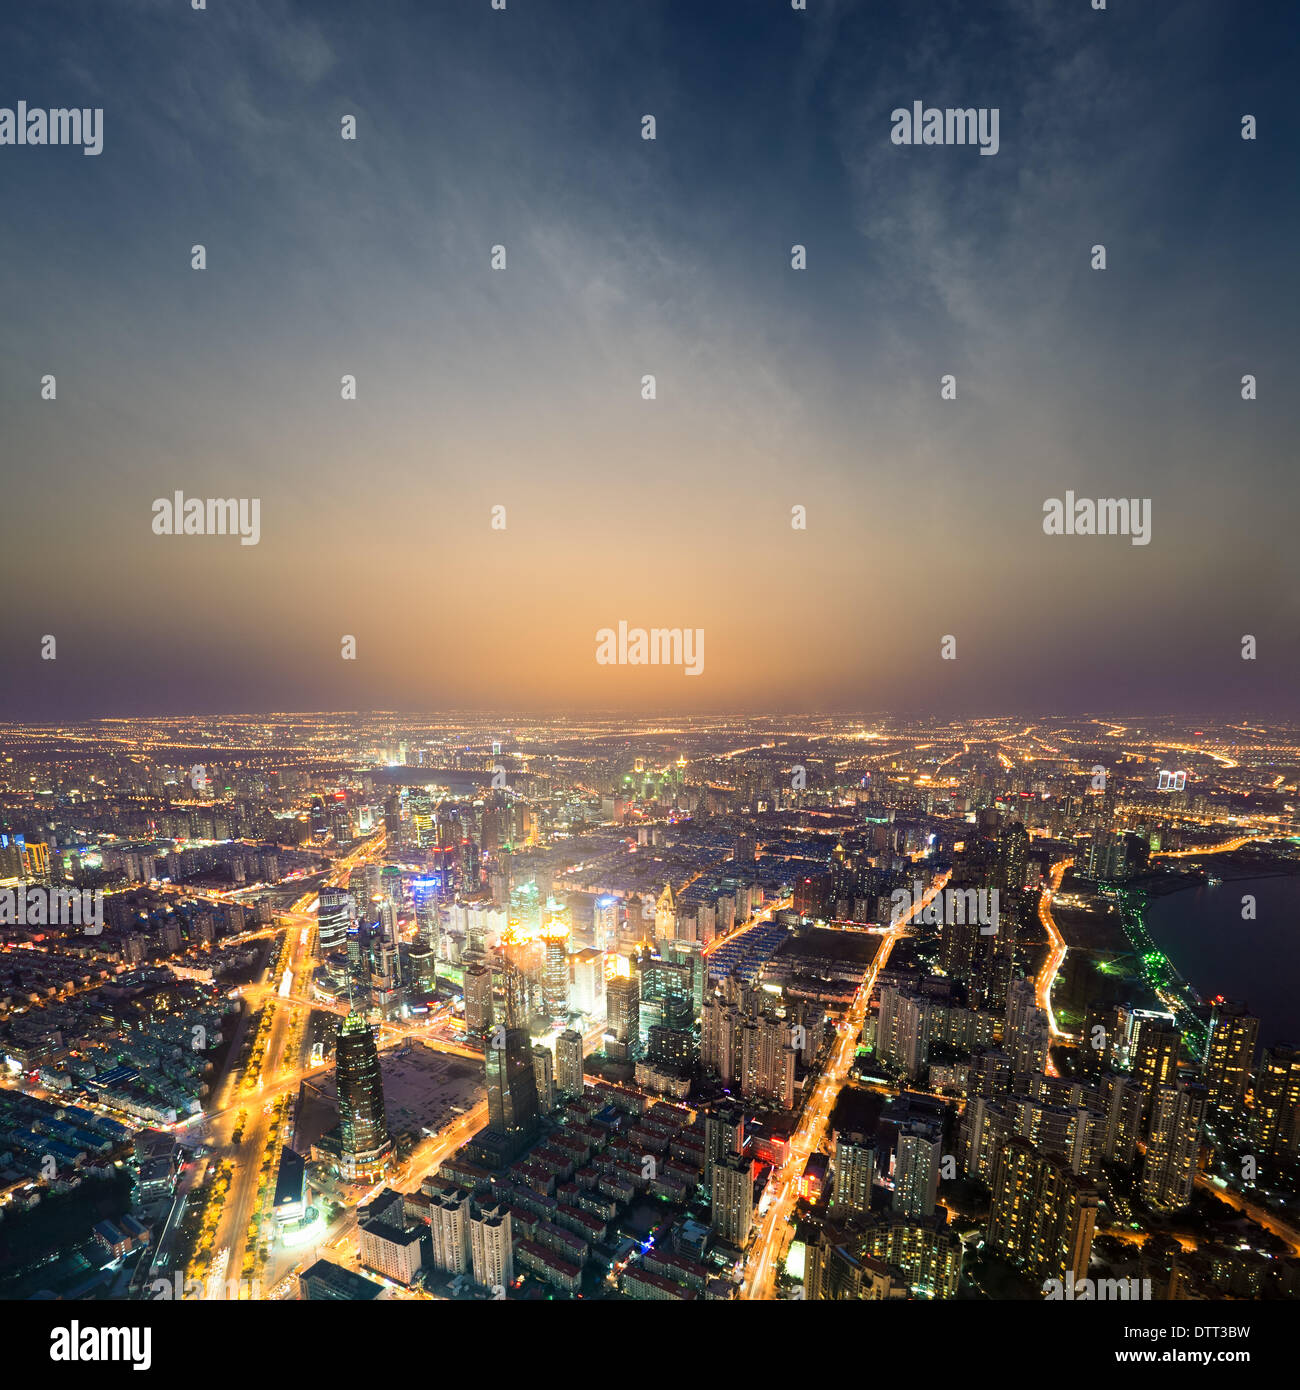 Shanghai metropolis at night Photo Stock